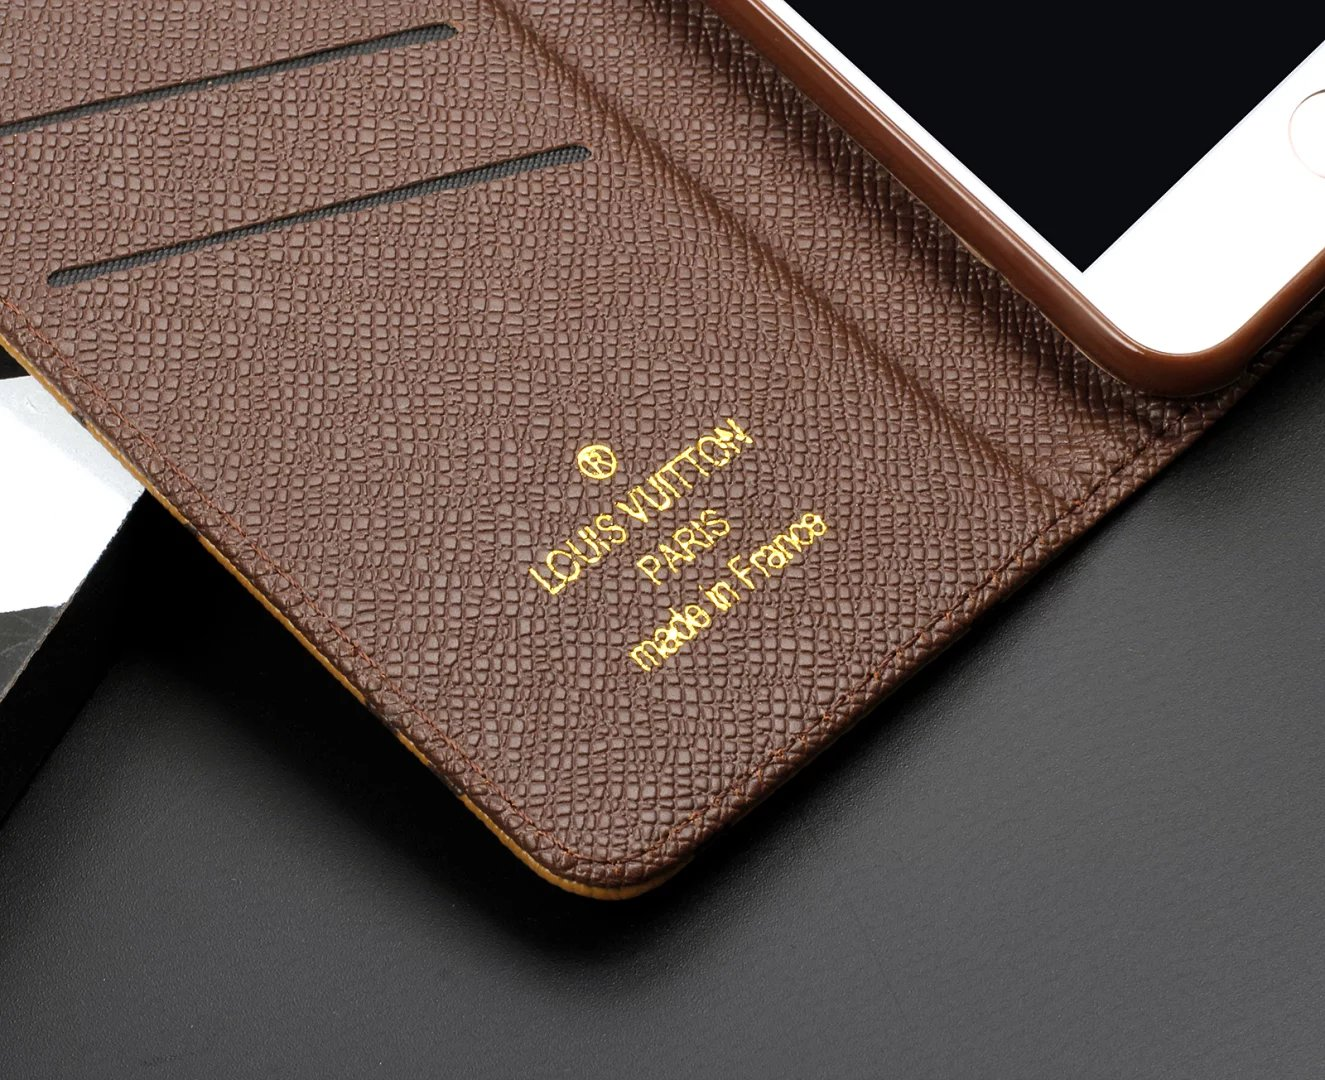 schöne iphone hüllen iphone case selbst gestalten Louis Vuitton iphone6 plus hülle billig iphone 6 Plus iphone 6 Plus hülle ausgefallen handyhülle i phone 6 iphone 6 Plus arbon ca6 handytasche leder iphone 6 Plus schutz iphone 6 Plus